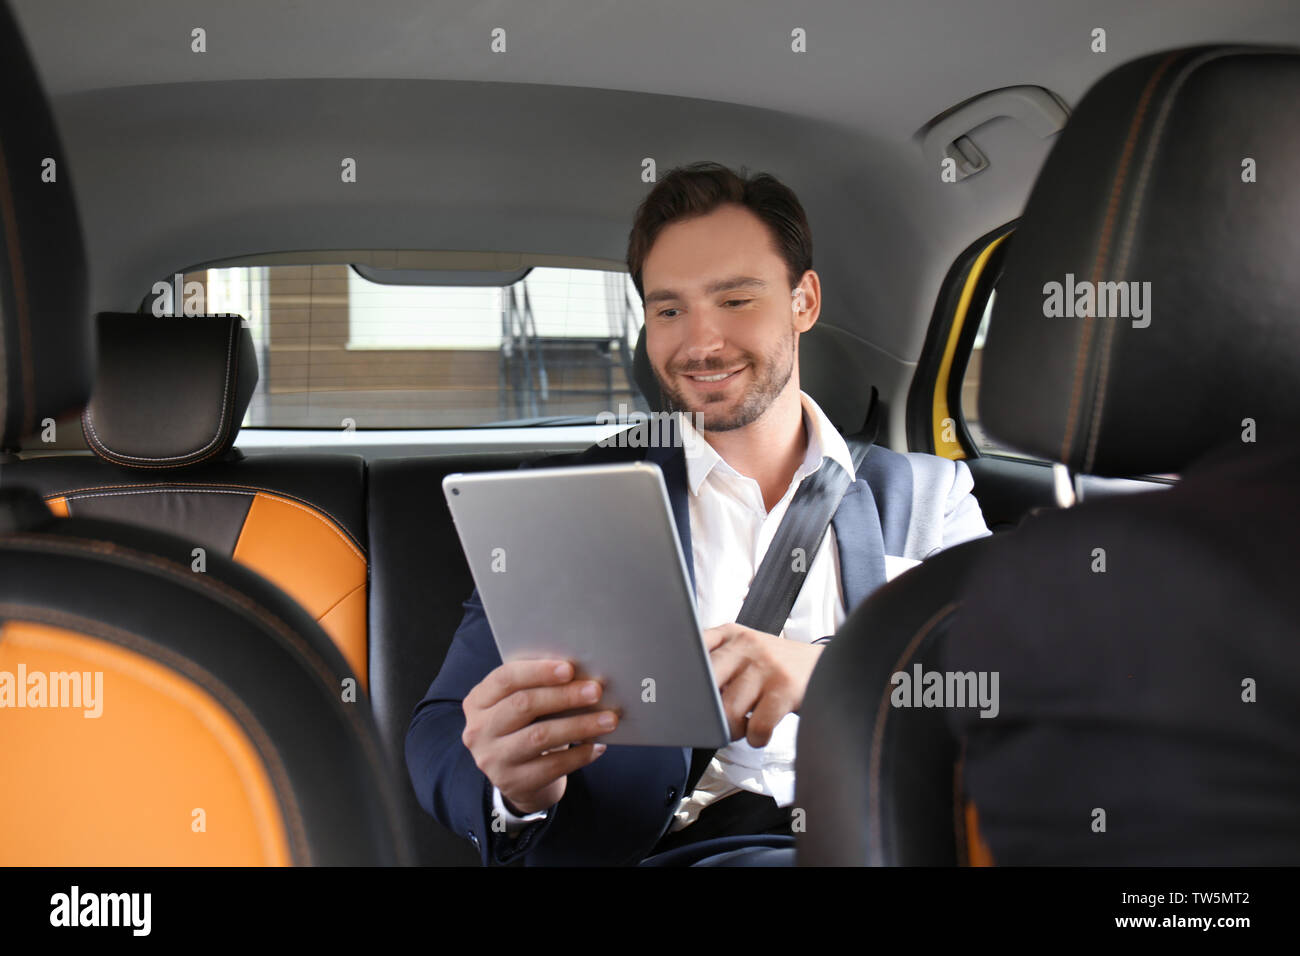 Handsome man with tablet sitting in taxi car - Stock Image